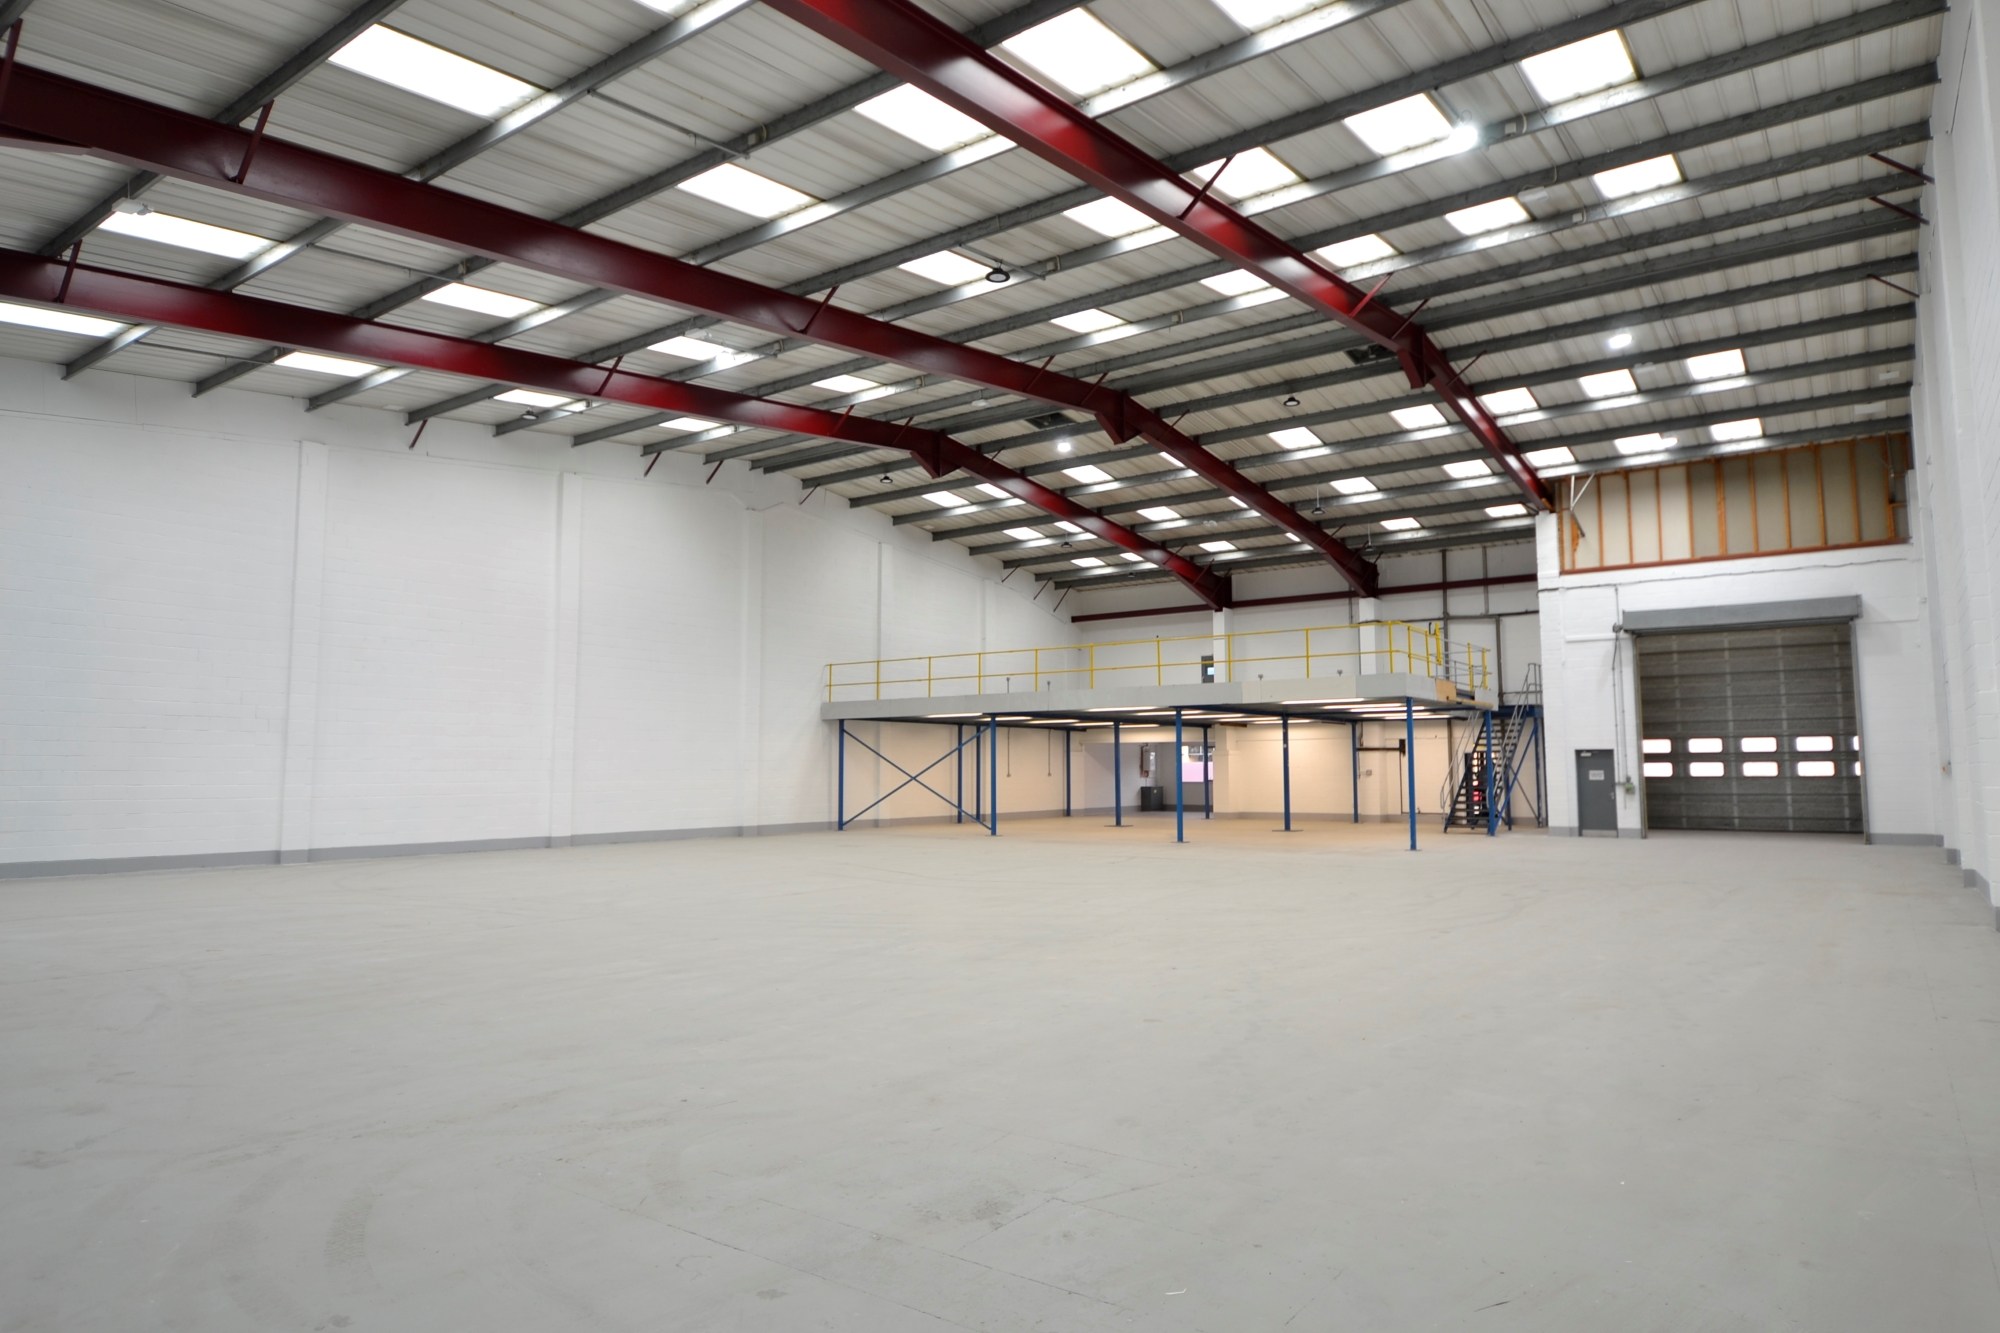 Warehousing industrial DidcotSouthmead Oxfordshire